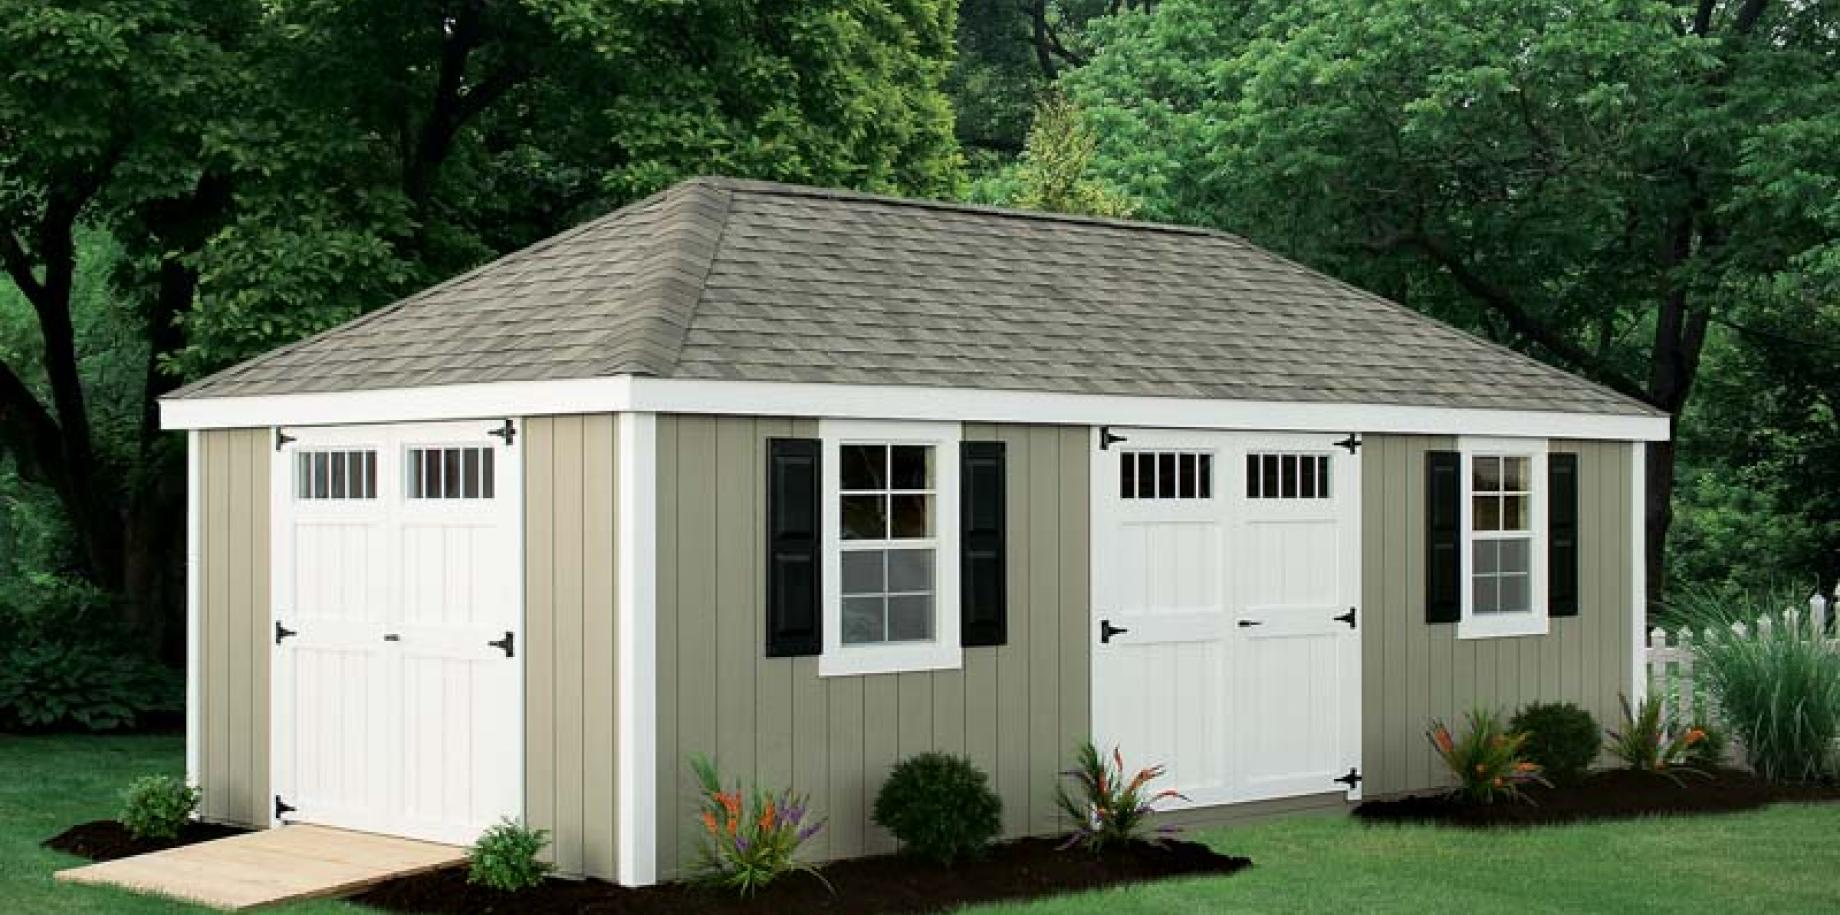 Hip roof shed